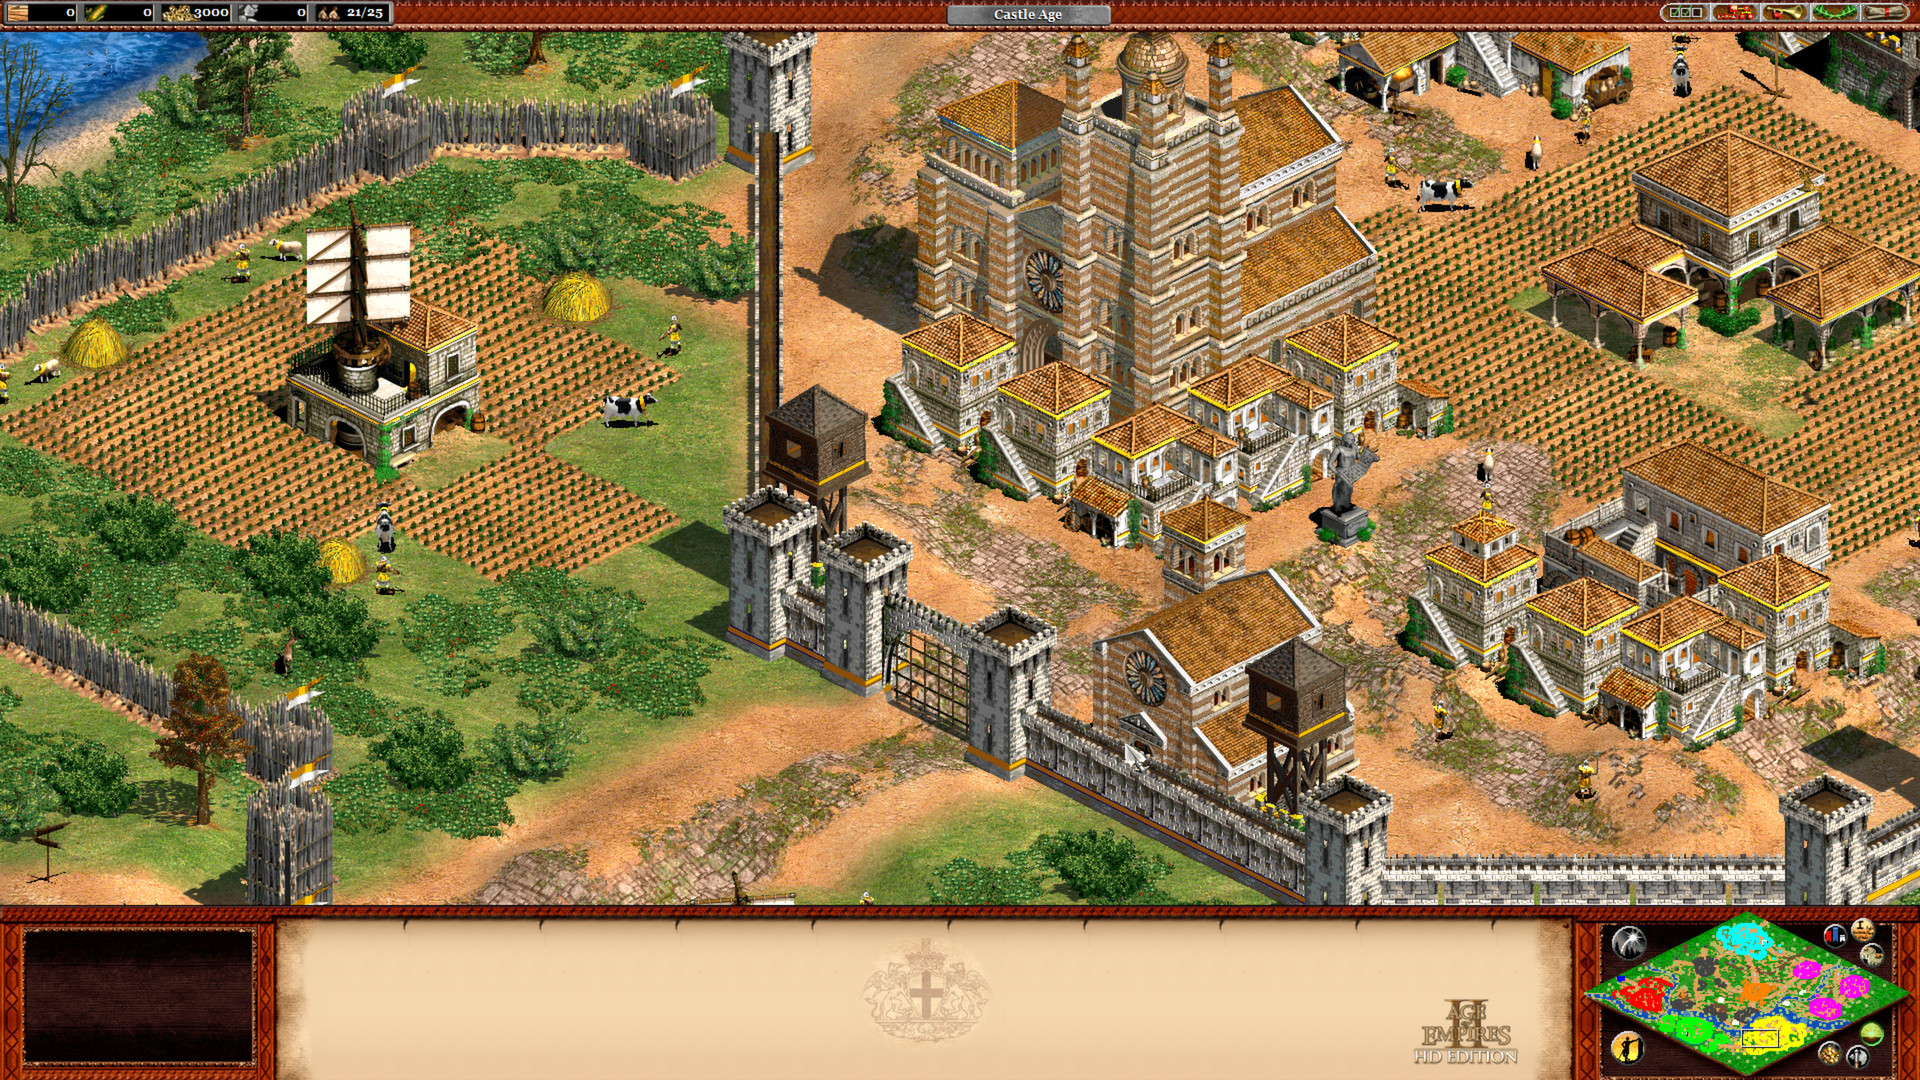 age of empires 2 full game torrent